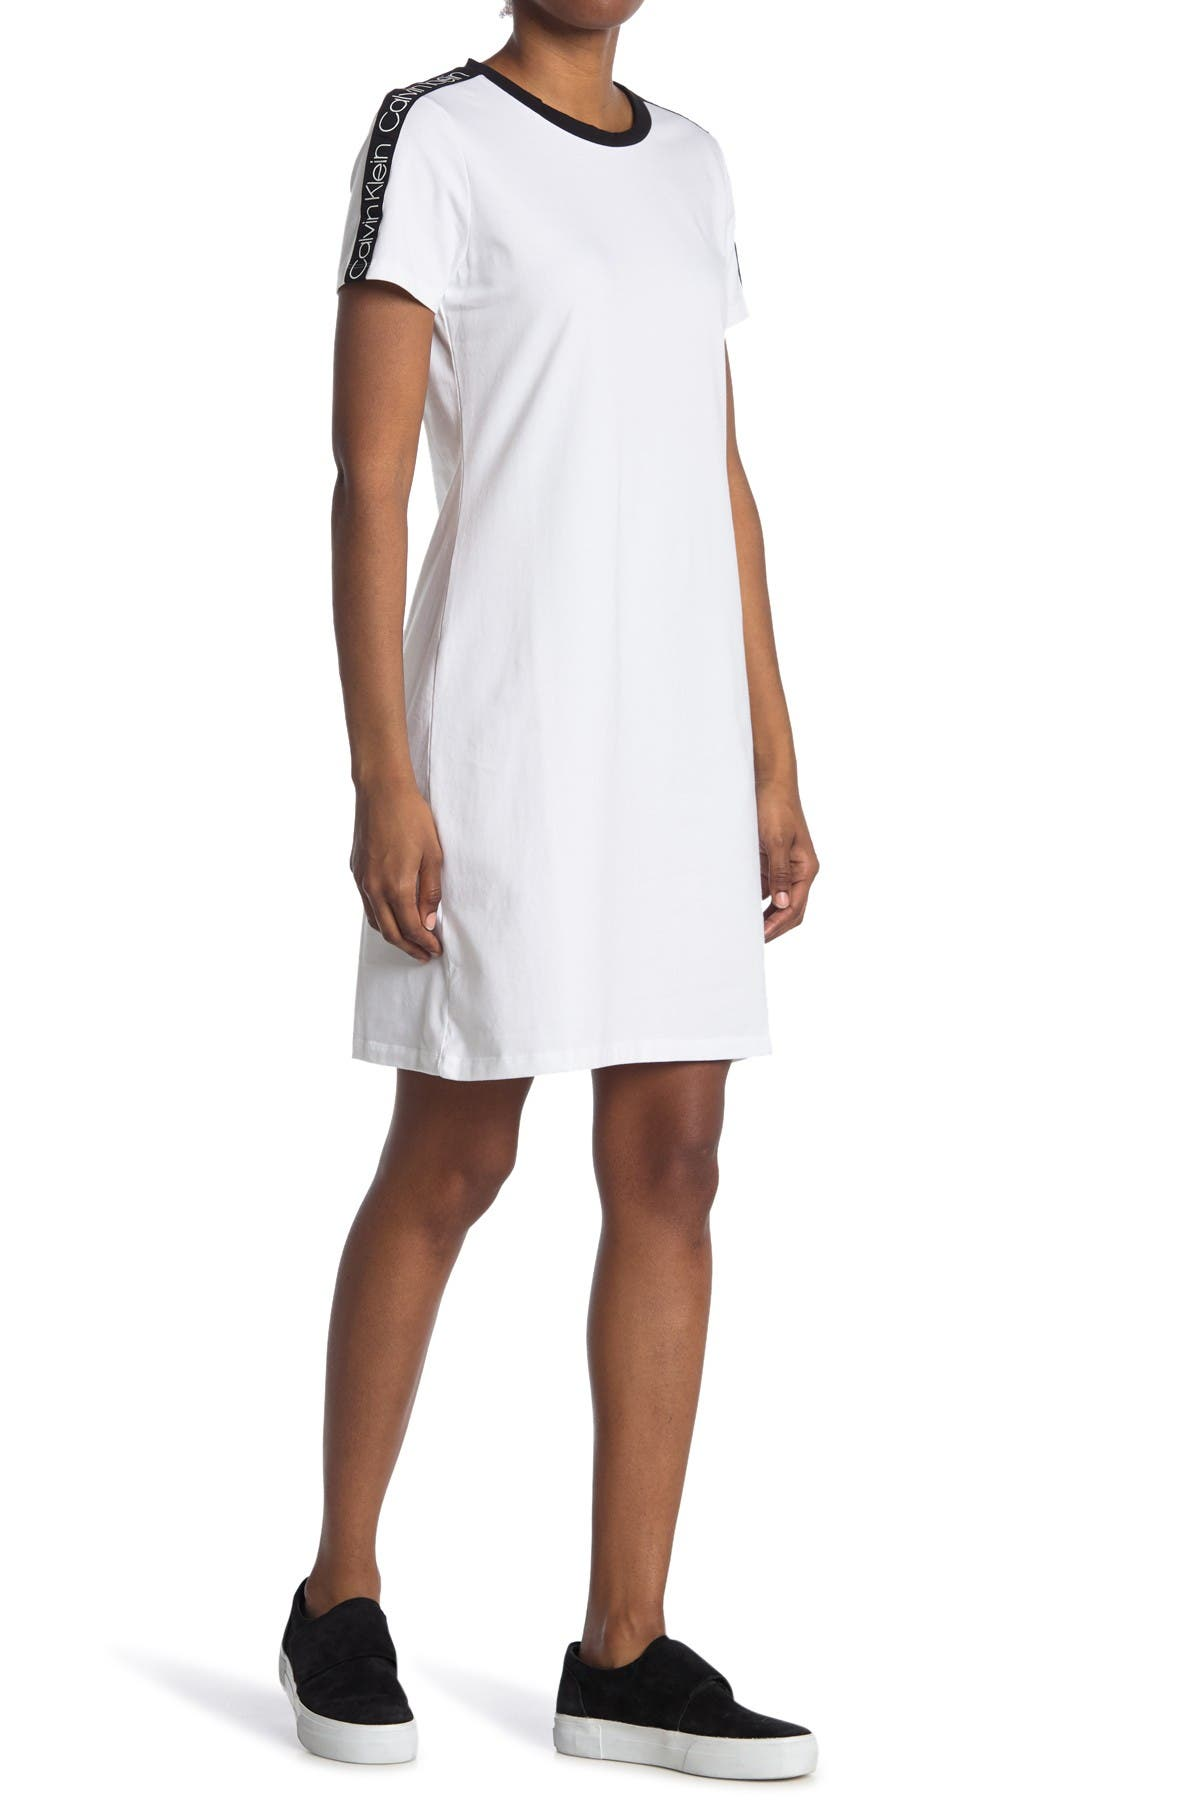 Image of Calvin Klein Logo Print T-Shirt Dress